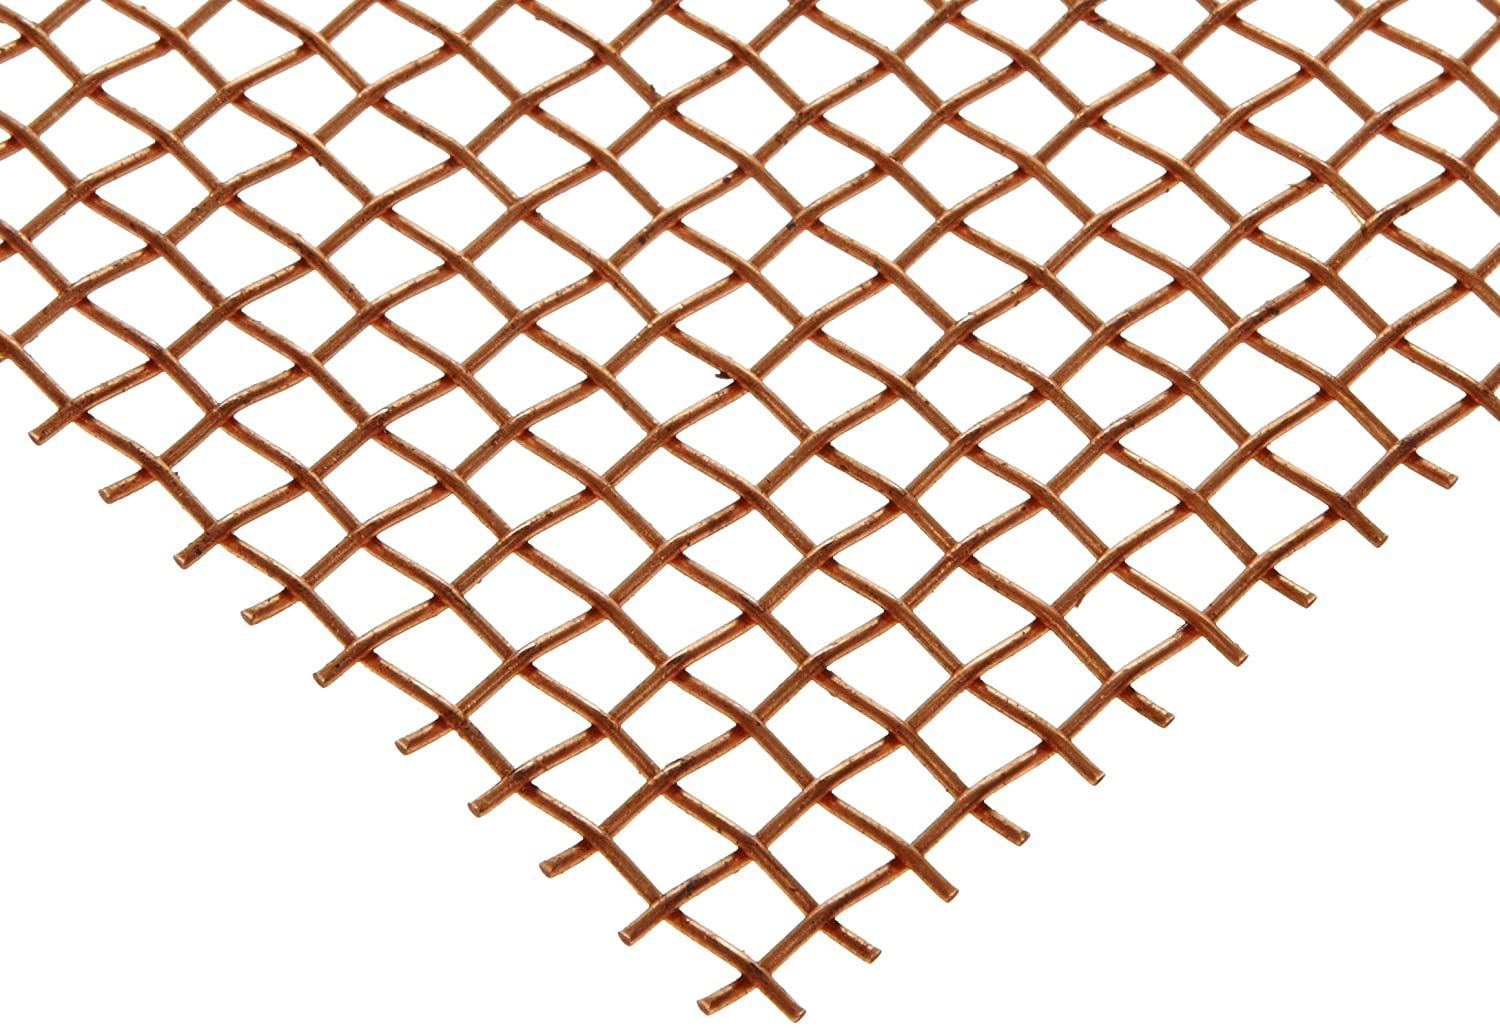 Amazon Com Copper Woven Mesh Sheet Unpolished Mill Finish Astm E2016 06 12 Width 24 Length 0 018 Wire Diameter 51 Open Area Industrial Scientific